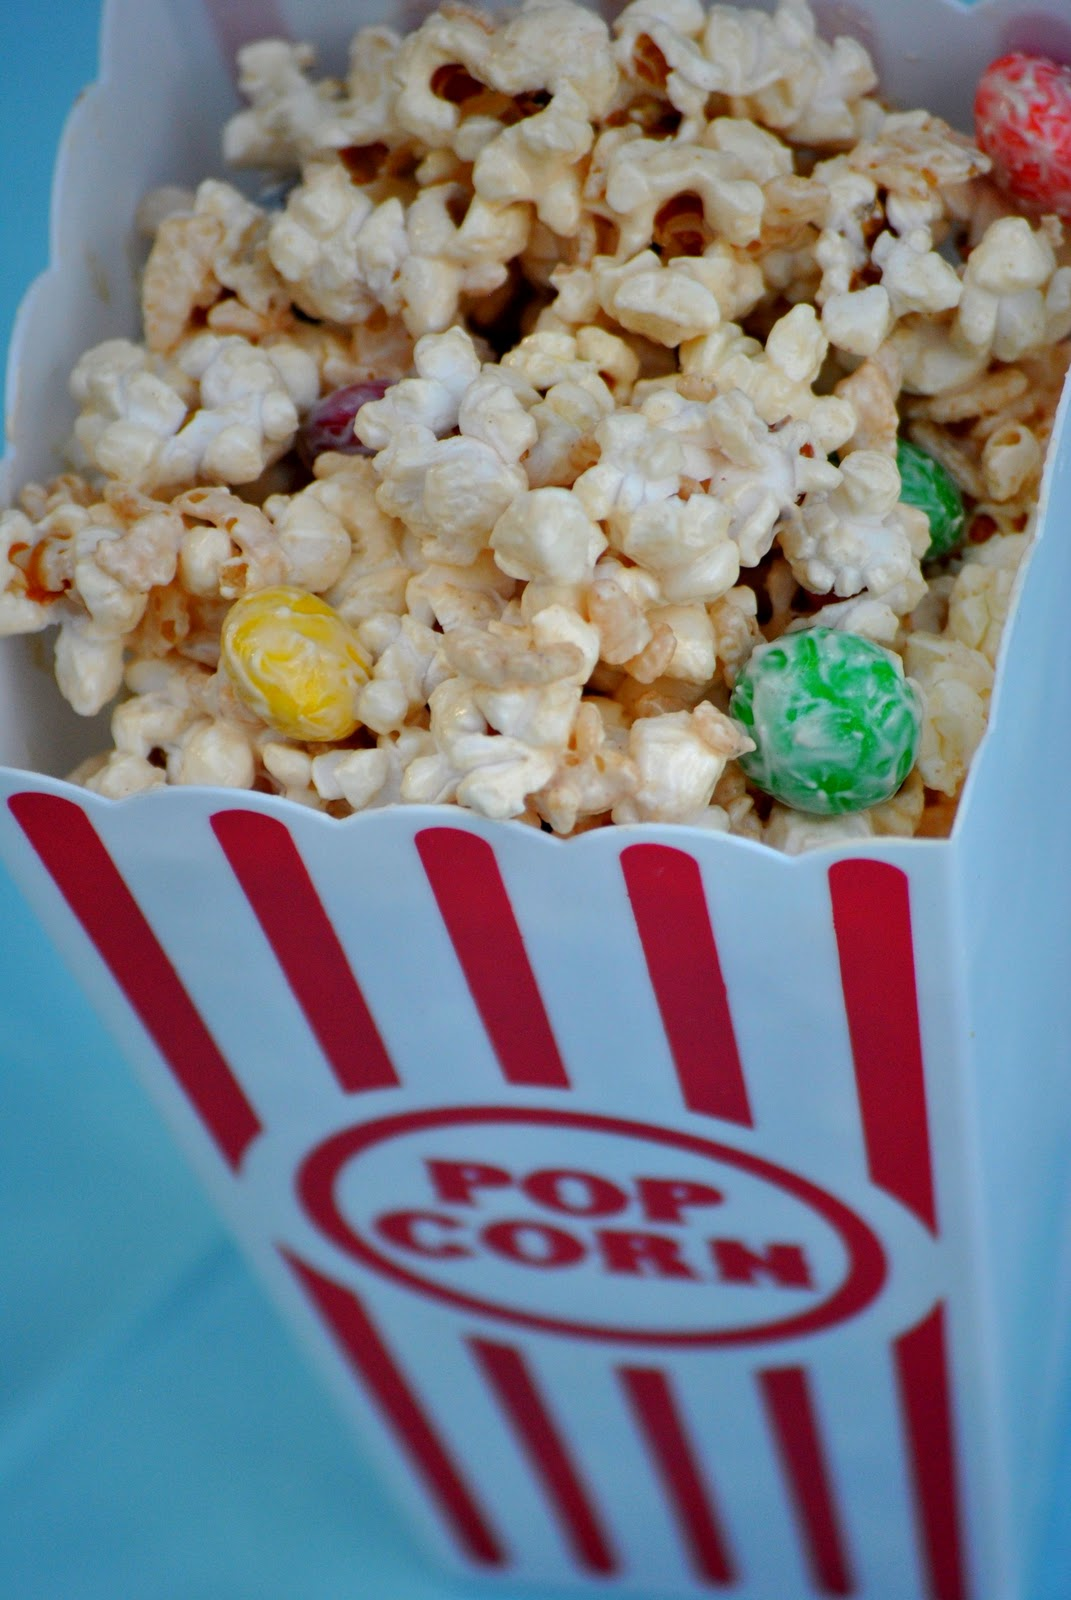 The Farm Girl Recipes: White Chocolate Peanut Butter Popcorn